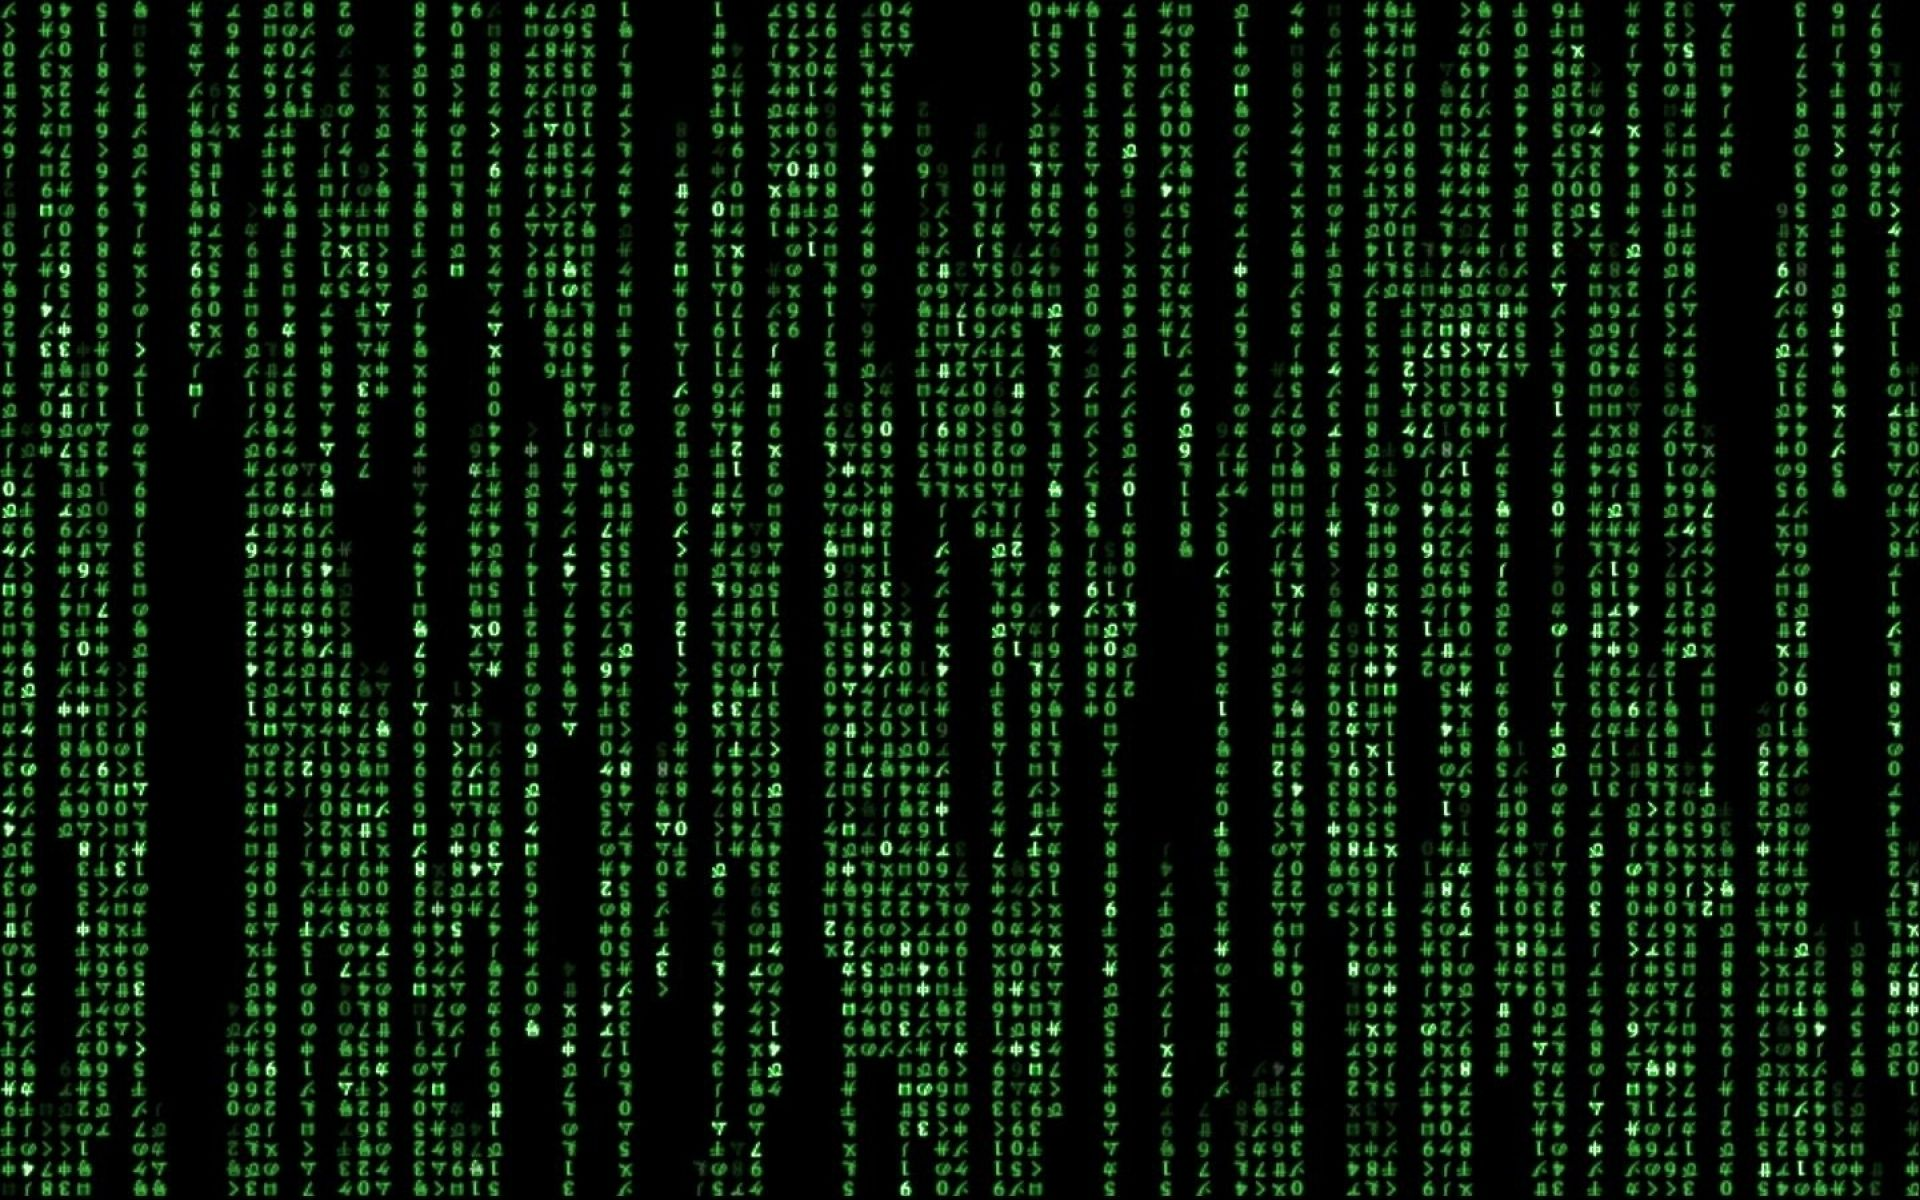 Matrix Wallpaper Animated | Wallpapers in 2019 | Animated